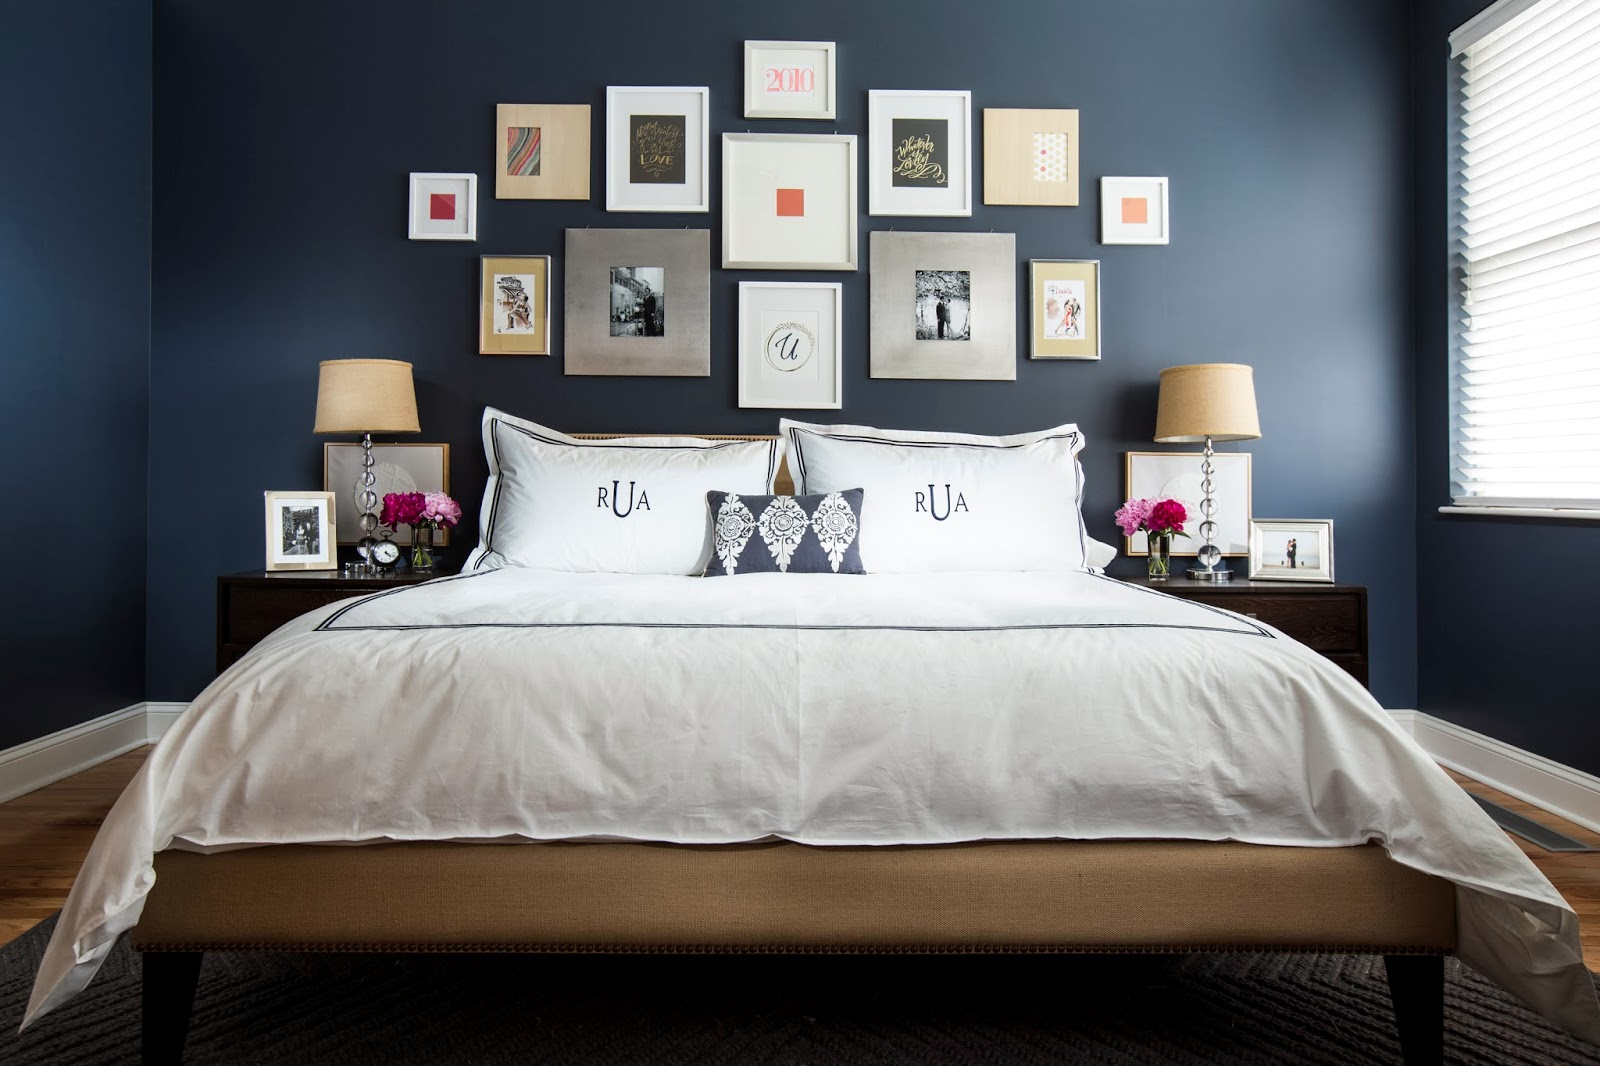 Dark blue and black bedroom - Navy Blue And Black Bedroom Ideas Amazing Design On